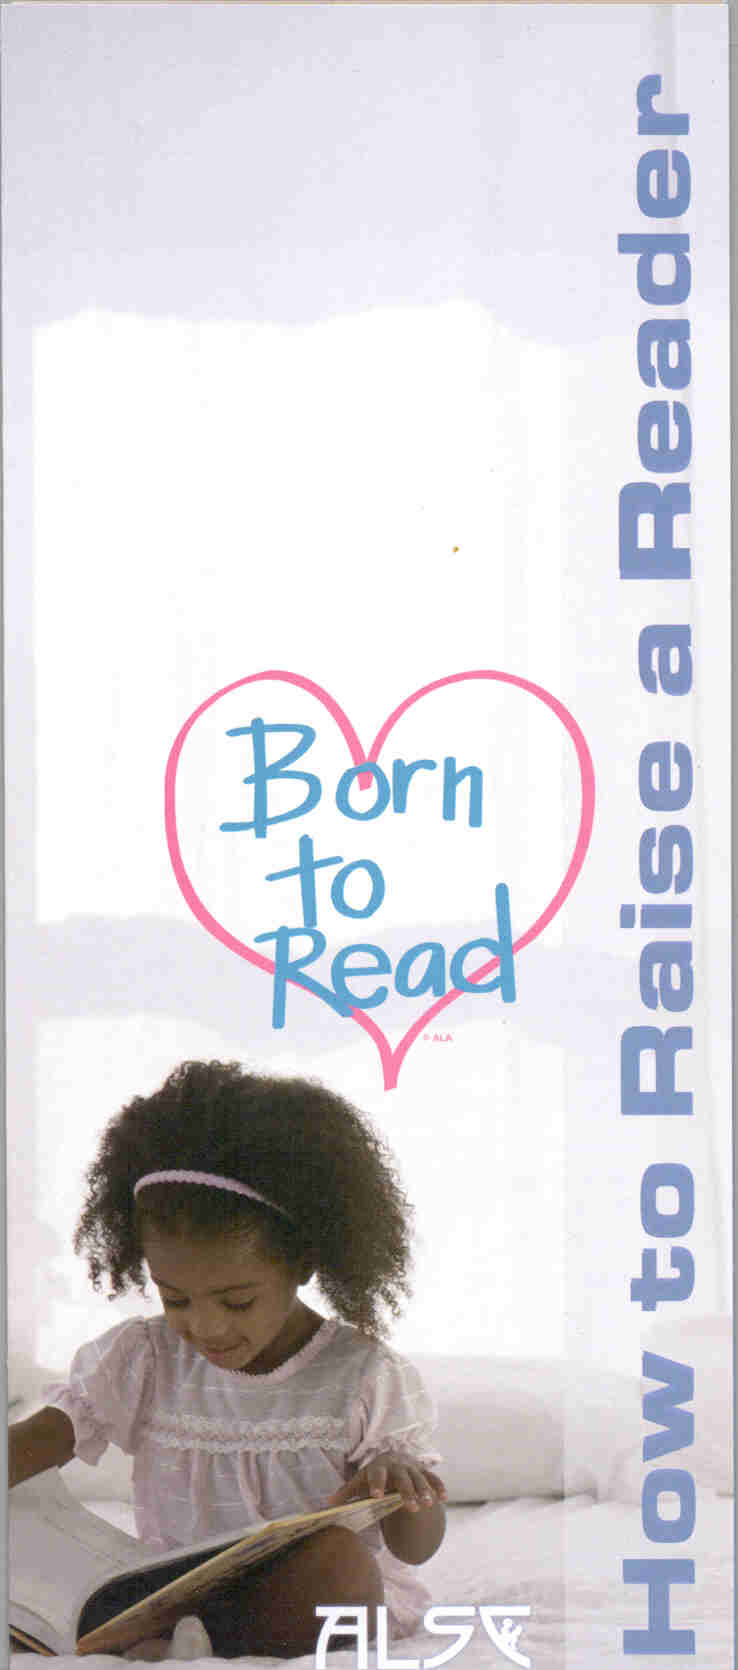 Born to Read brochure cover